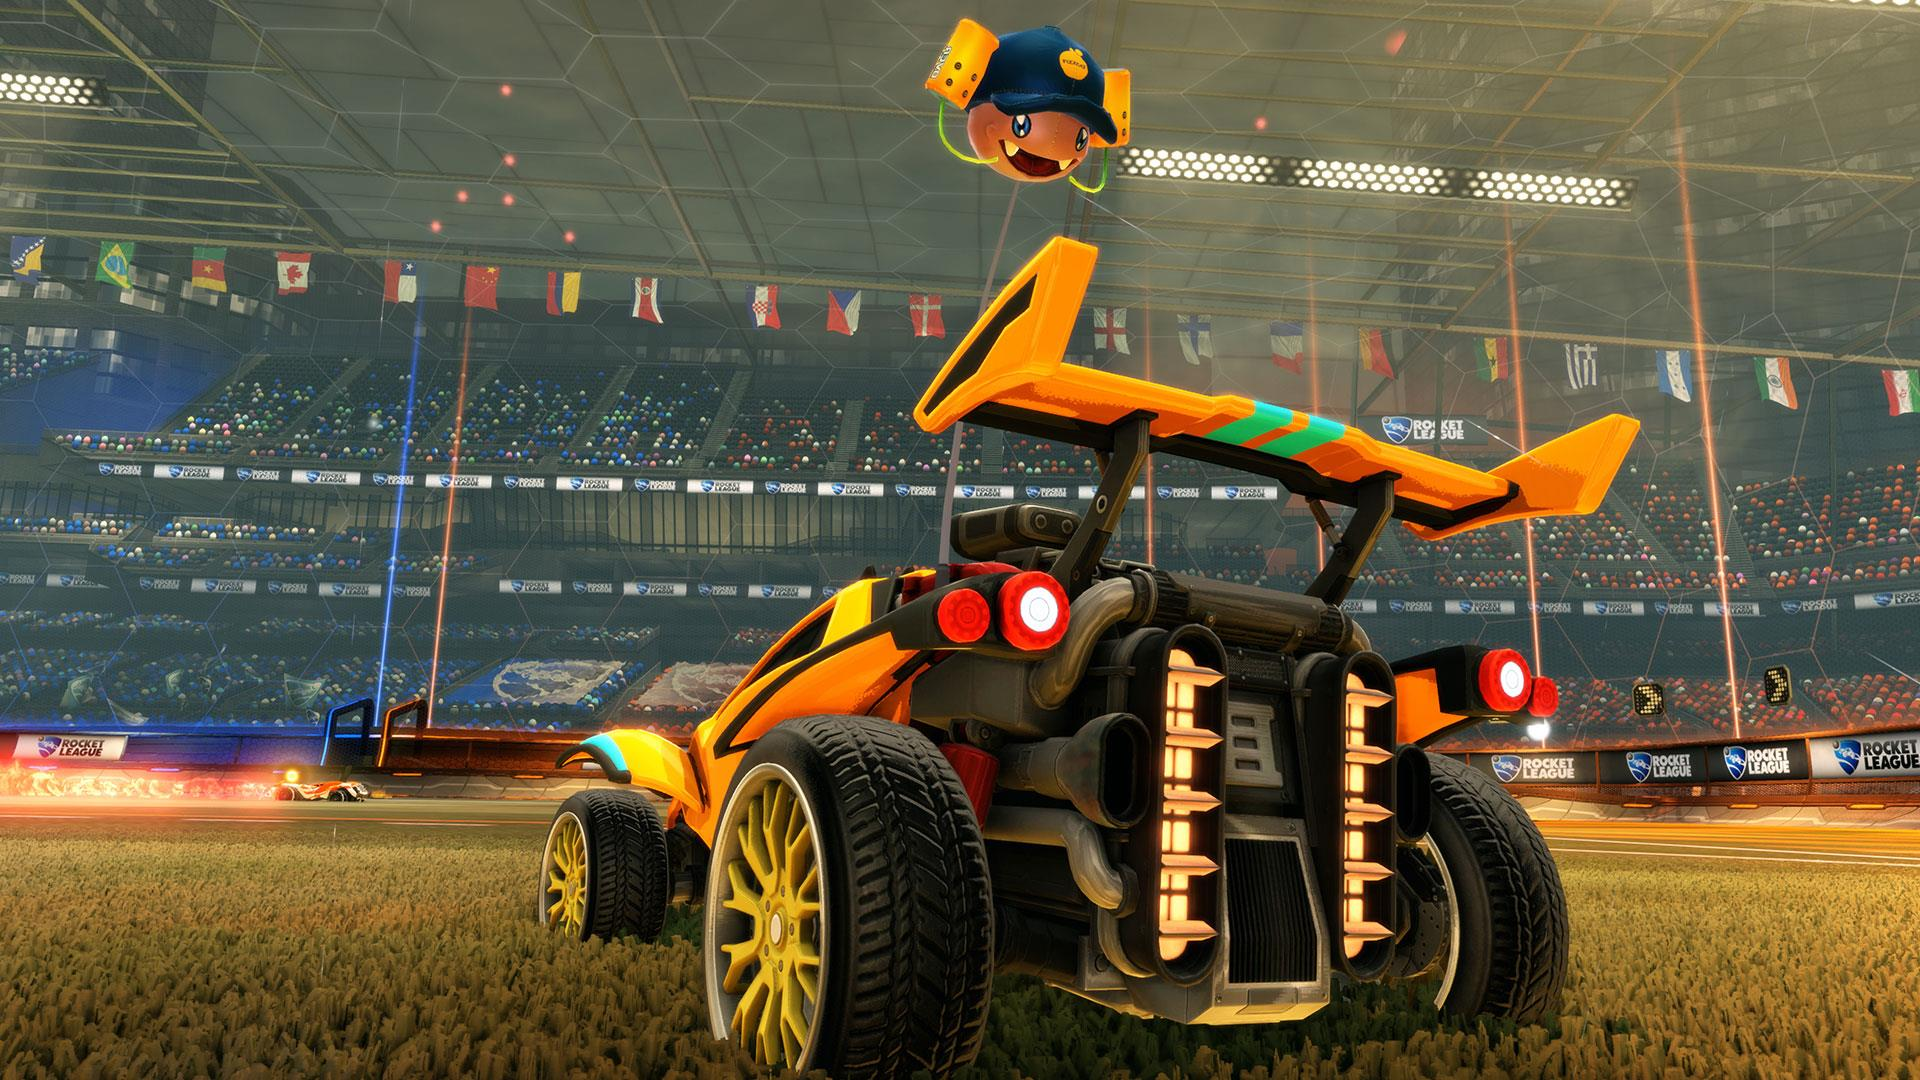 Rocket League PC Xbox One Cross Platform Multiplayer Coming Today VG247